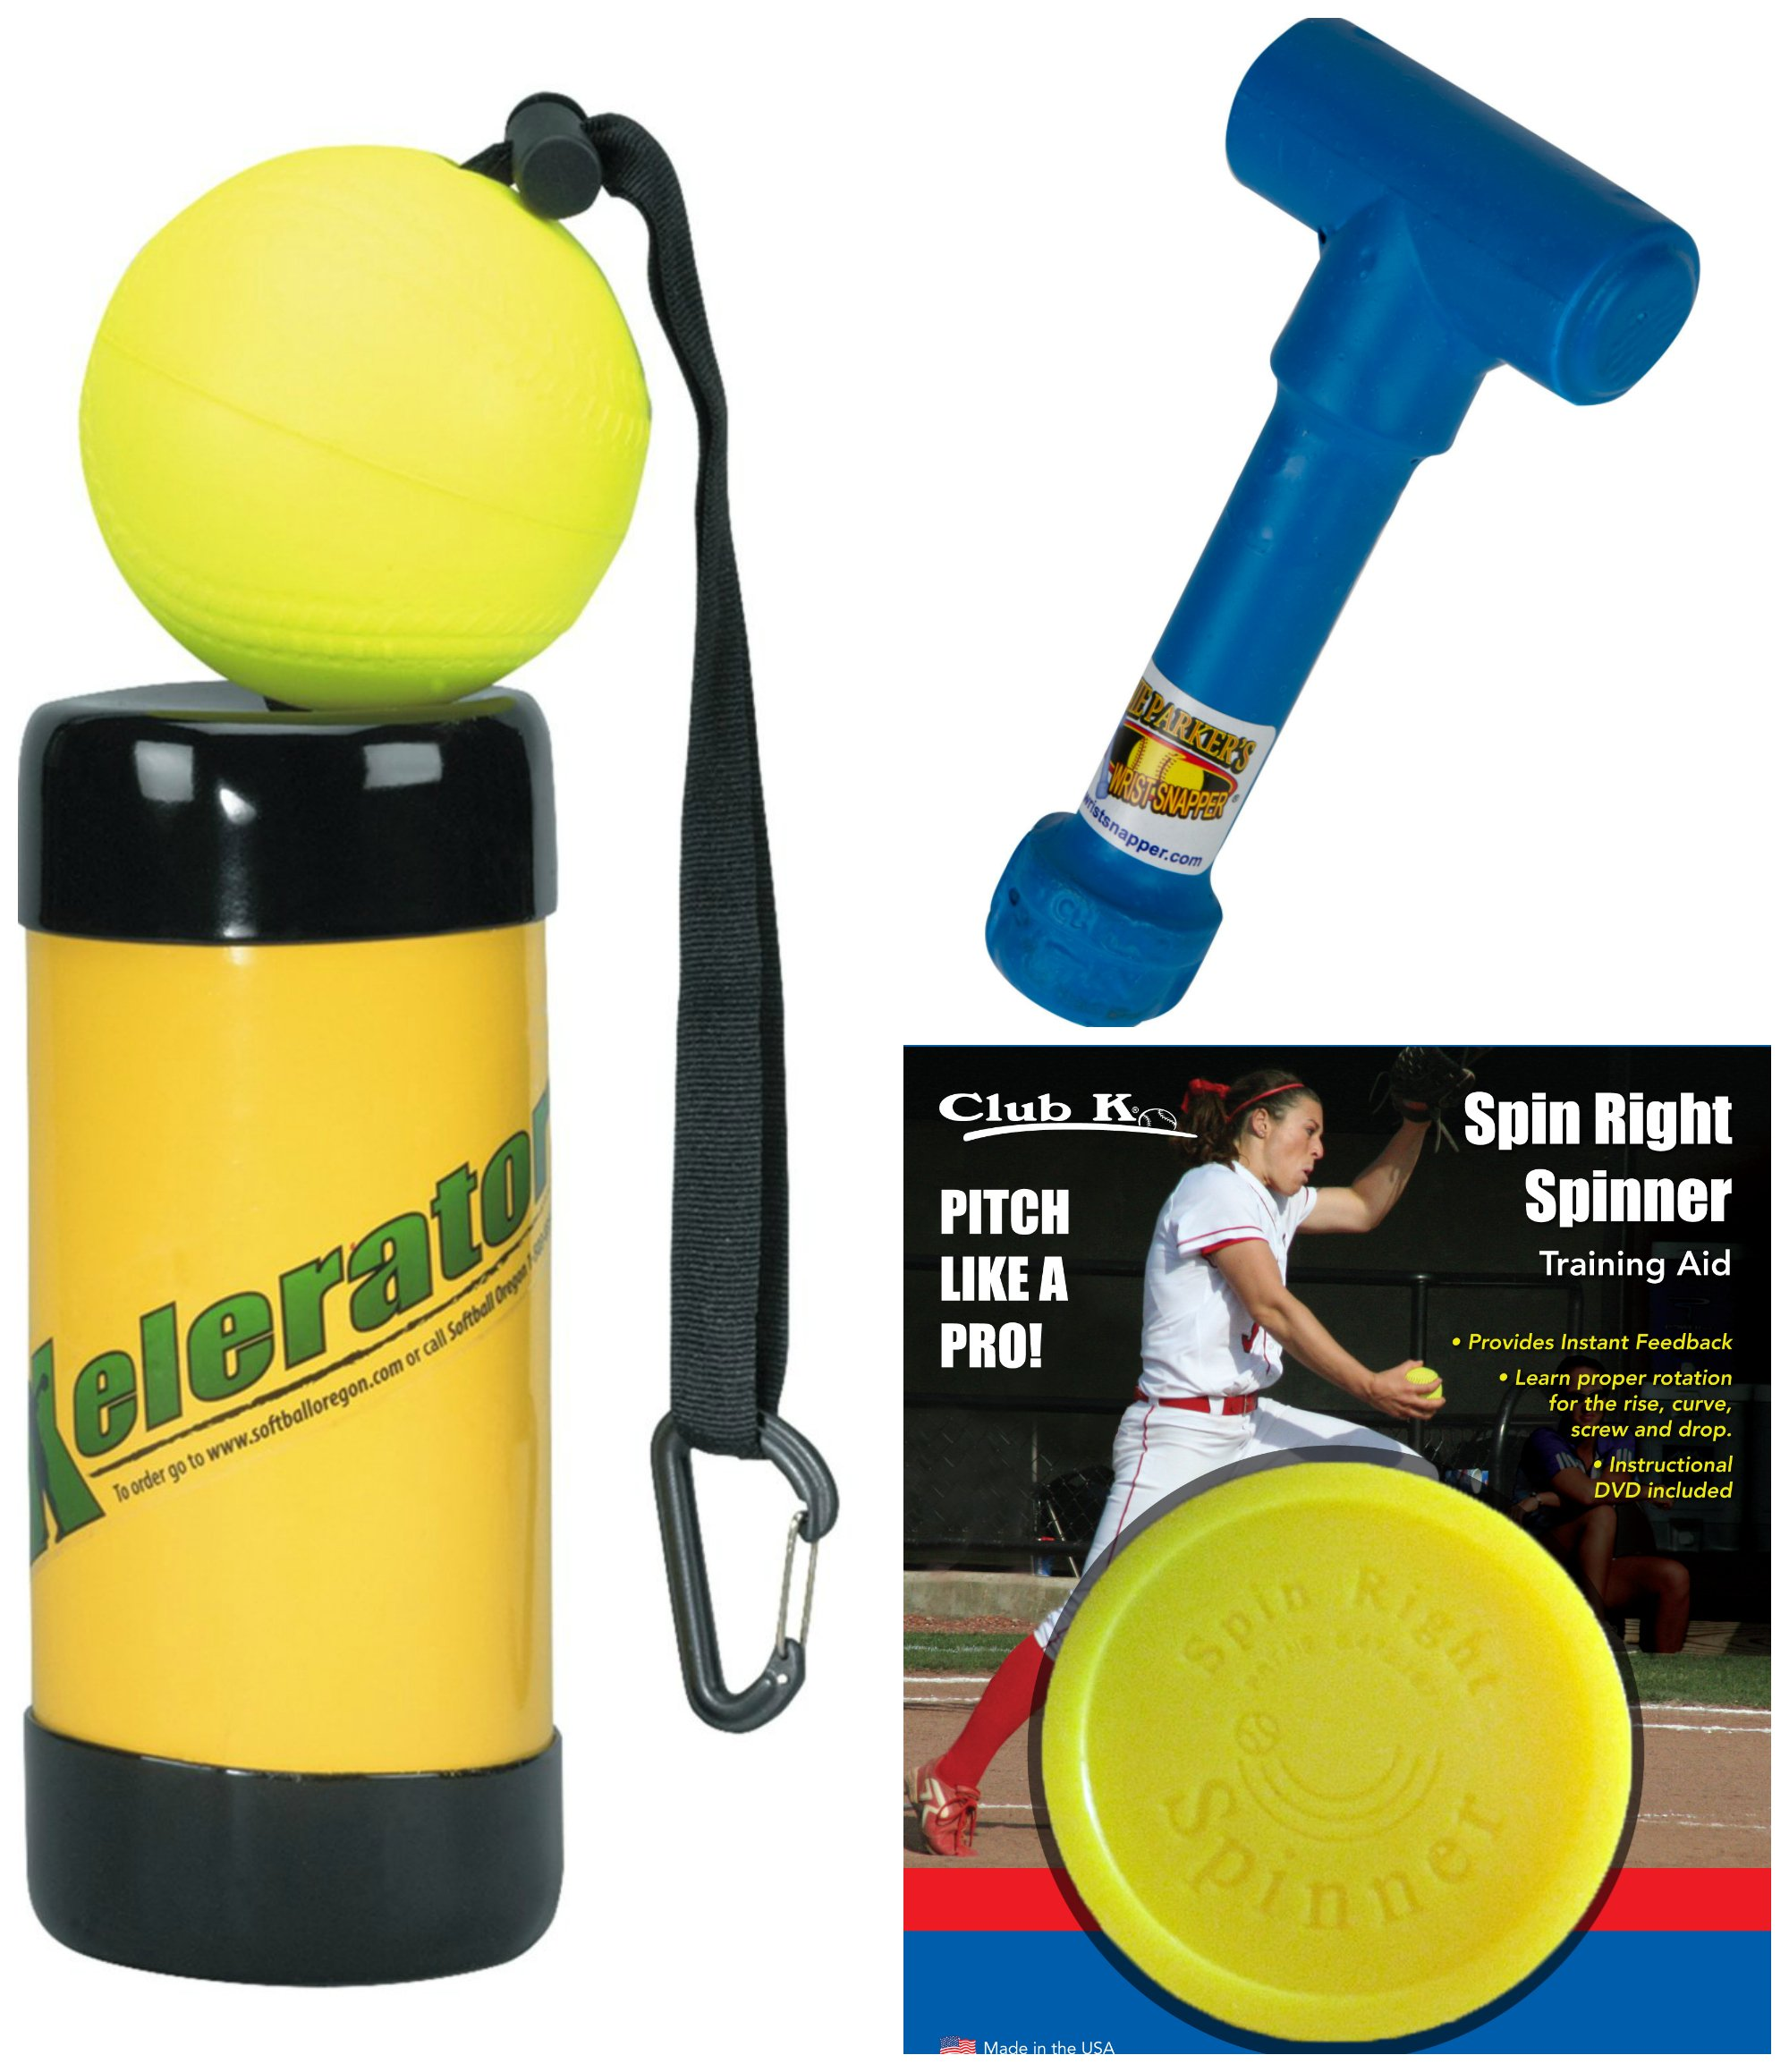 SPIN RIGHT SPINNER + Ernie Parker's WRIST SNAPPER + XELERATOR Fastpitch Softball Pitching Training Aids Equipment Gear